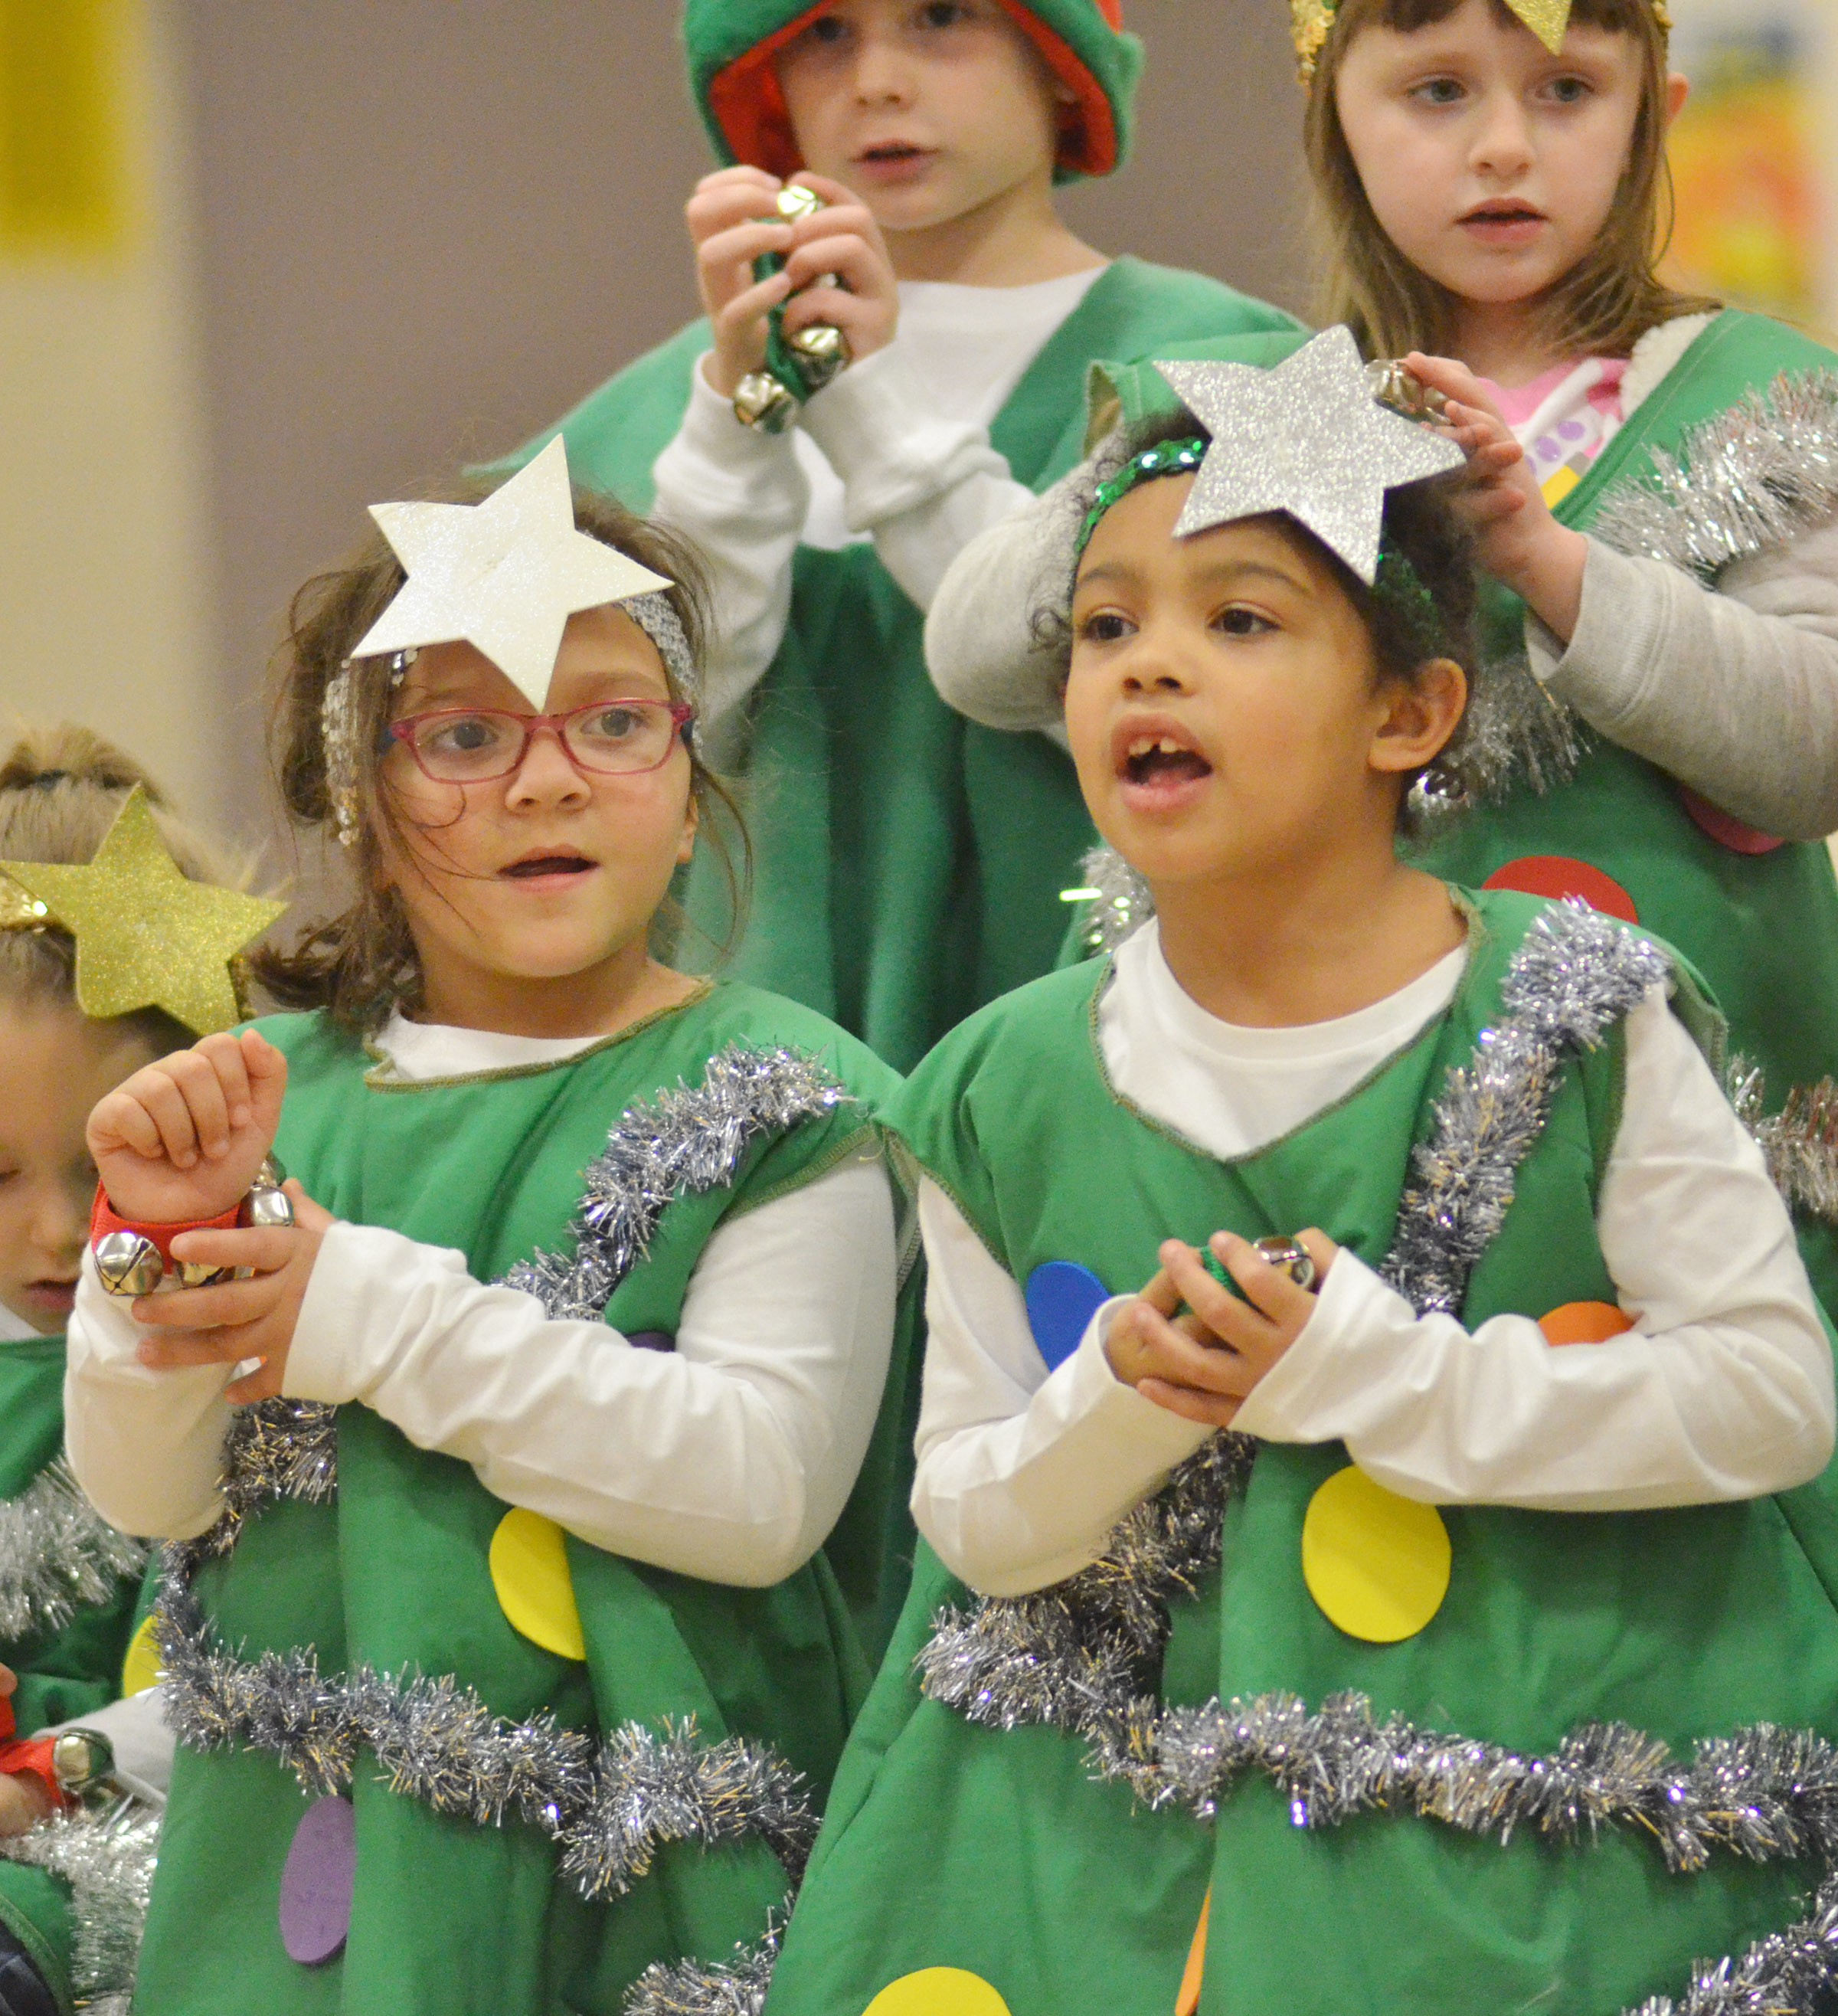 CES kindergarteners Addisyn Taylor, at left, and Rylee Karr sing and dance.